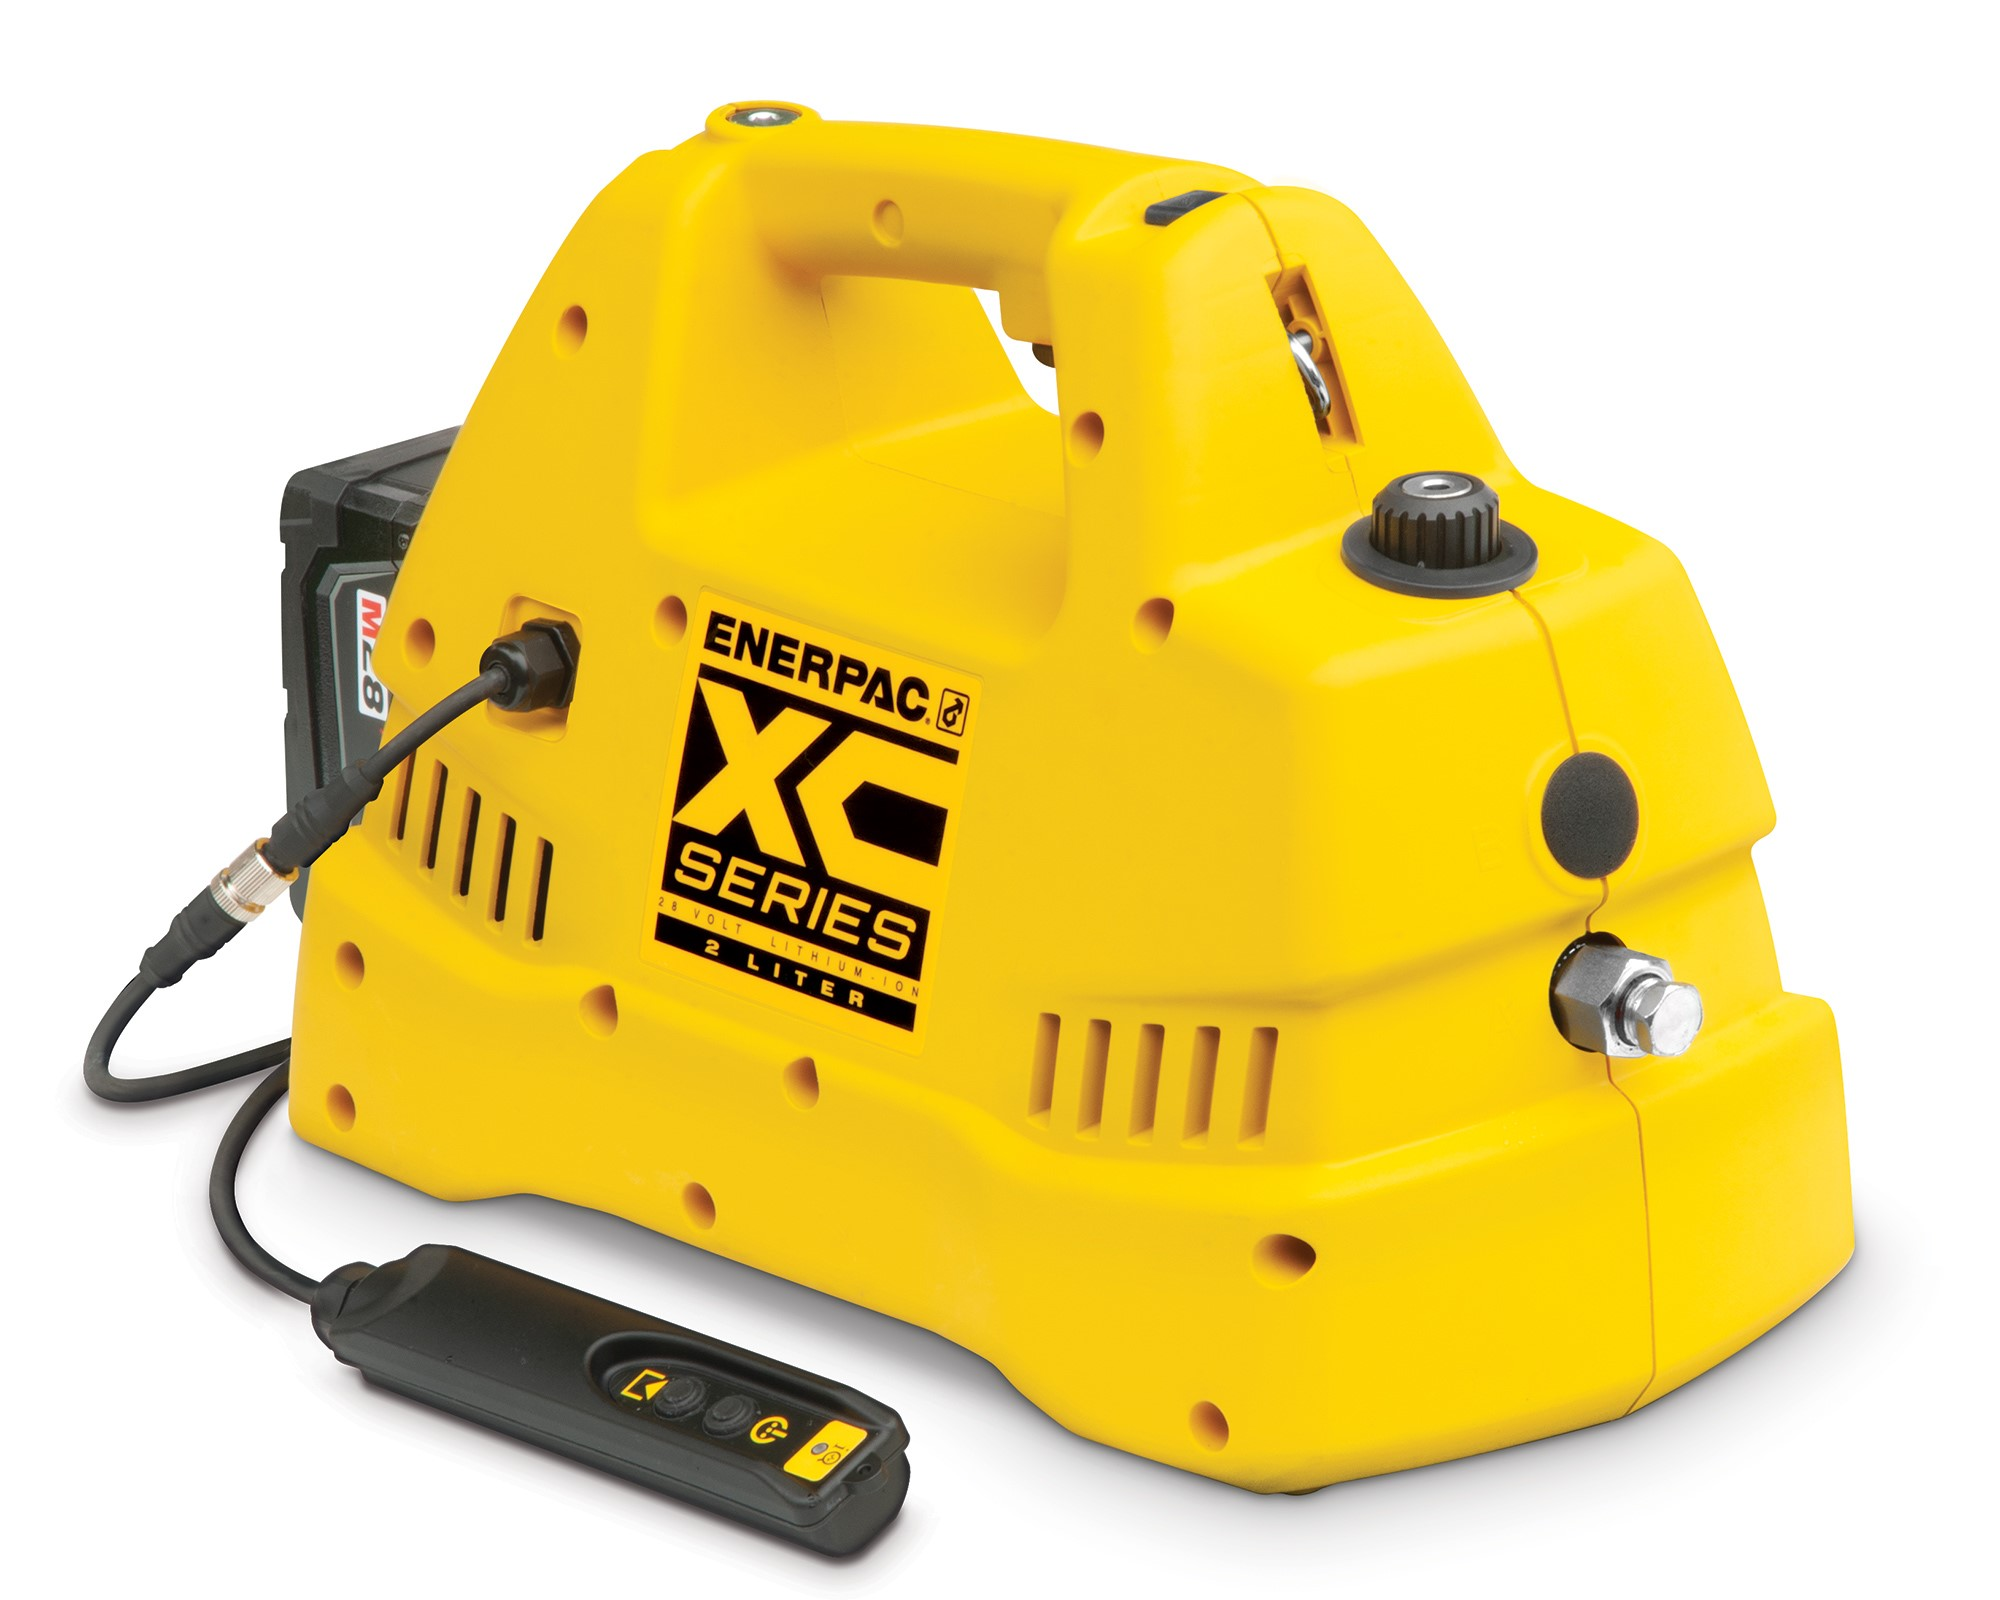 Enerpac announces XC1302S Cordless Dump and Hold Pump